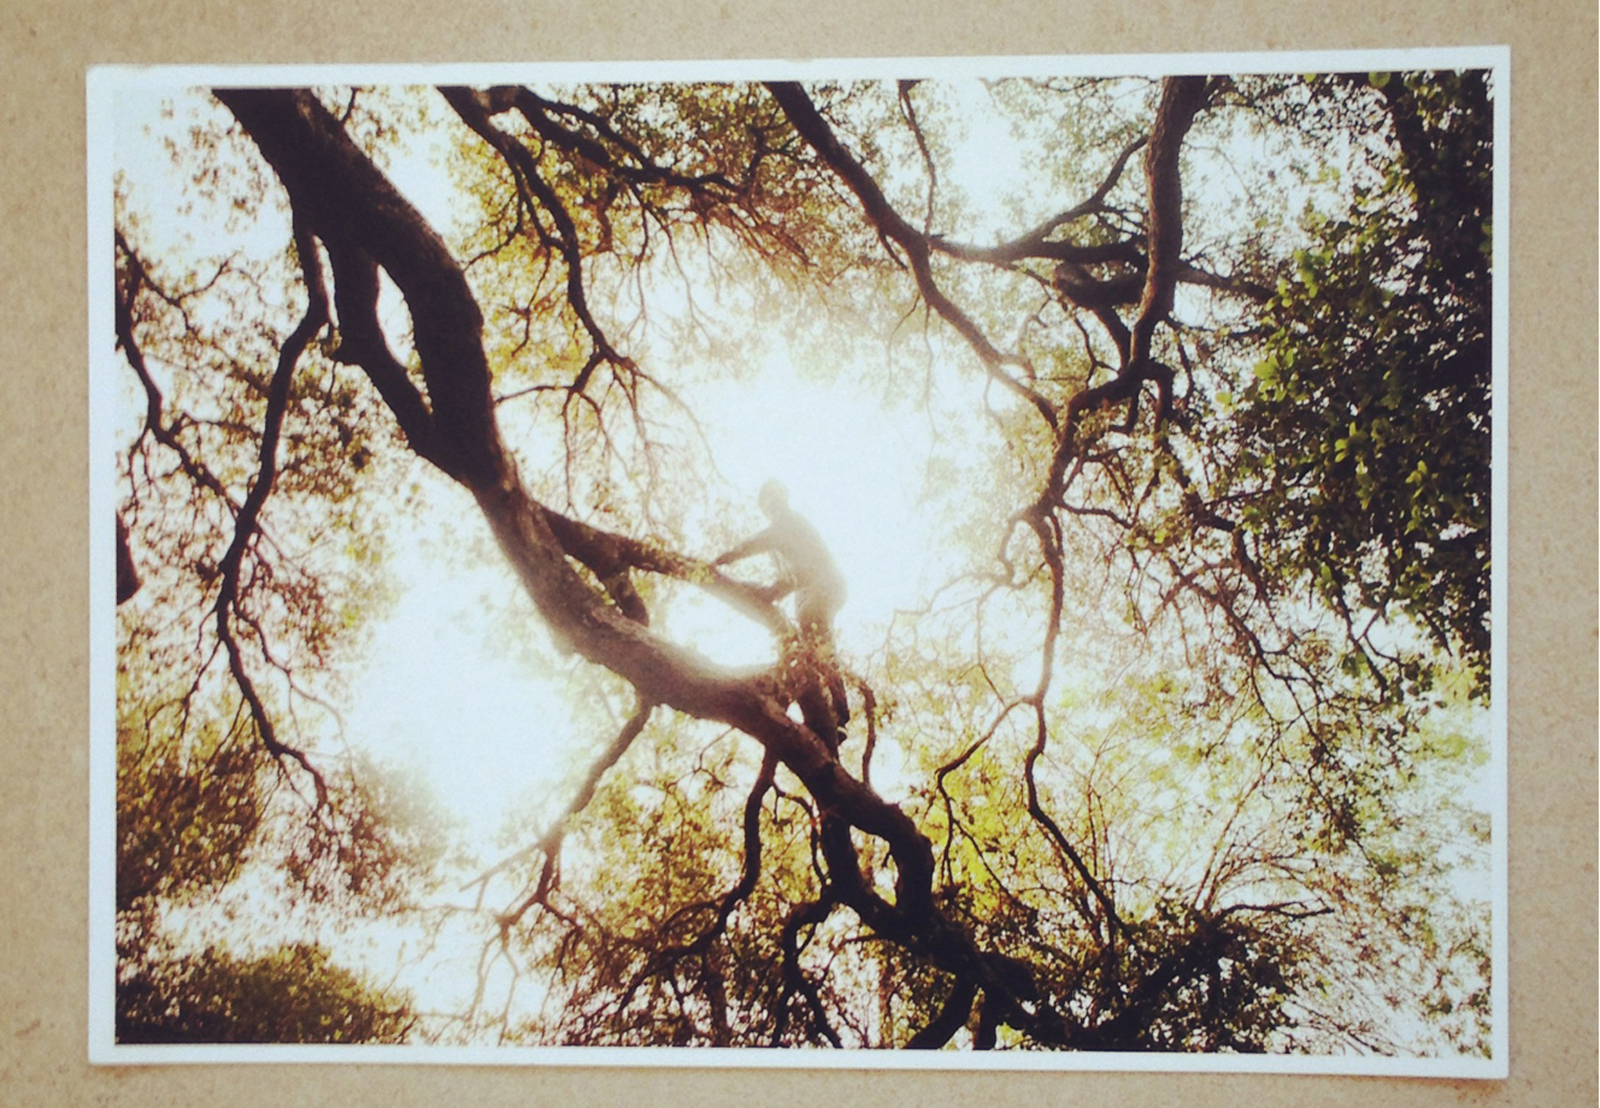 Landscape of tree and light by photographer Nathaniel Wood